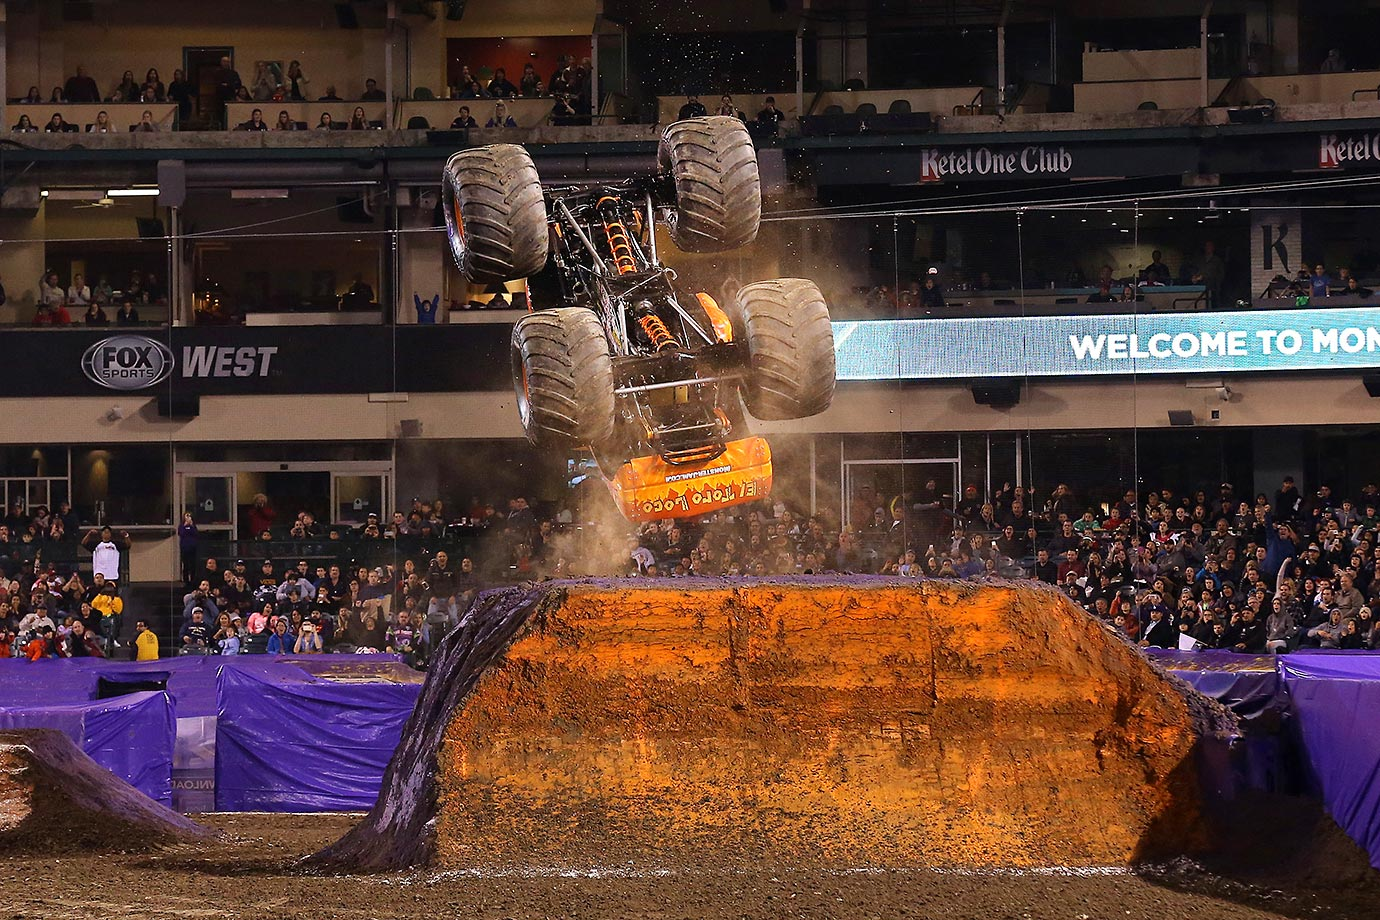 El Toro Loco excites the fans at Anaheim Stadium with a backflip.